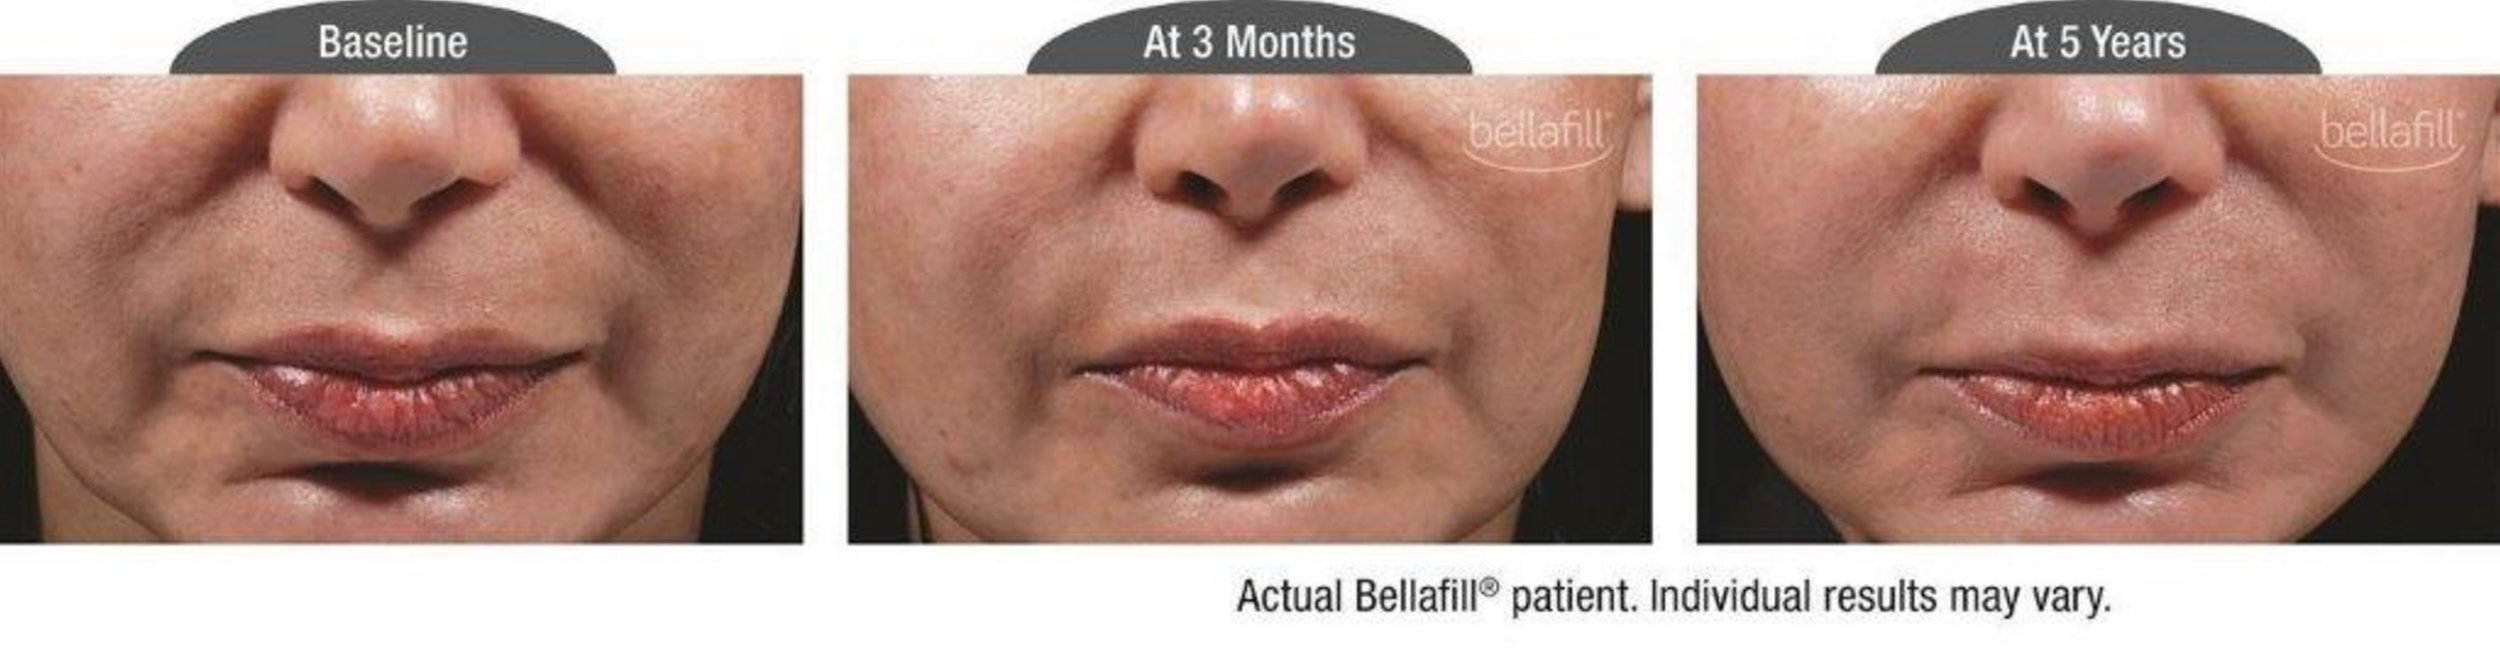 Bellafill_cosmetic_nasolabial_b&a.JPG